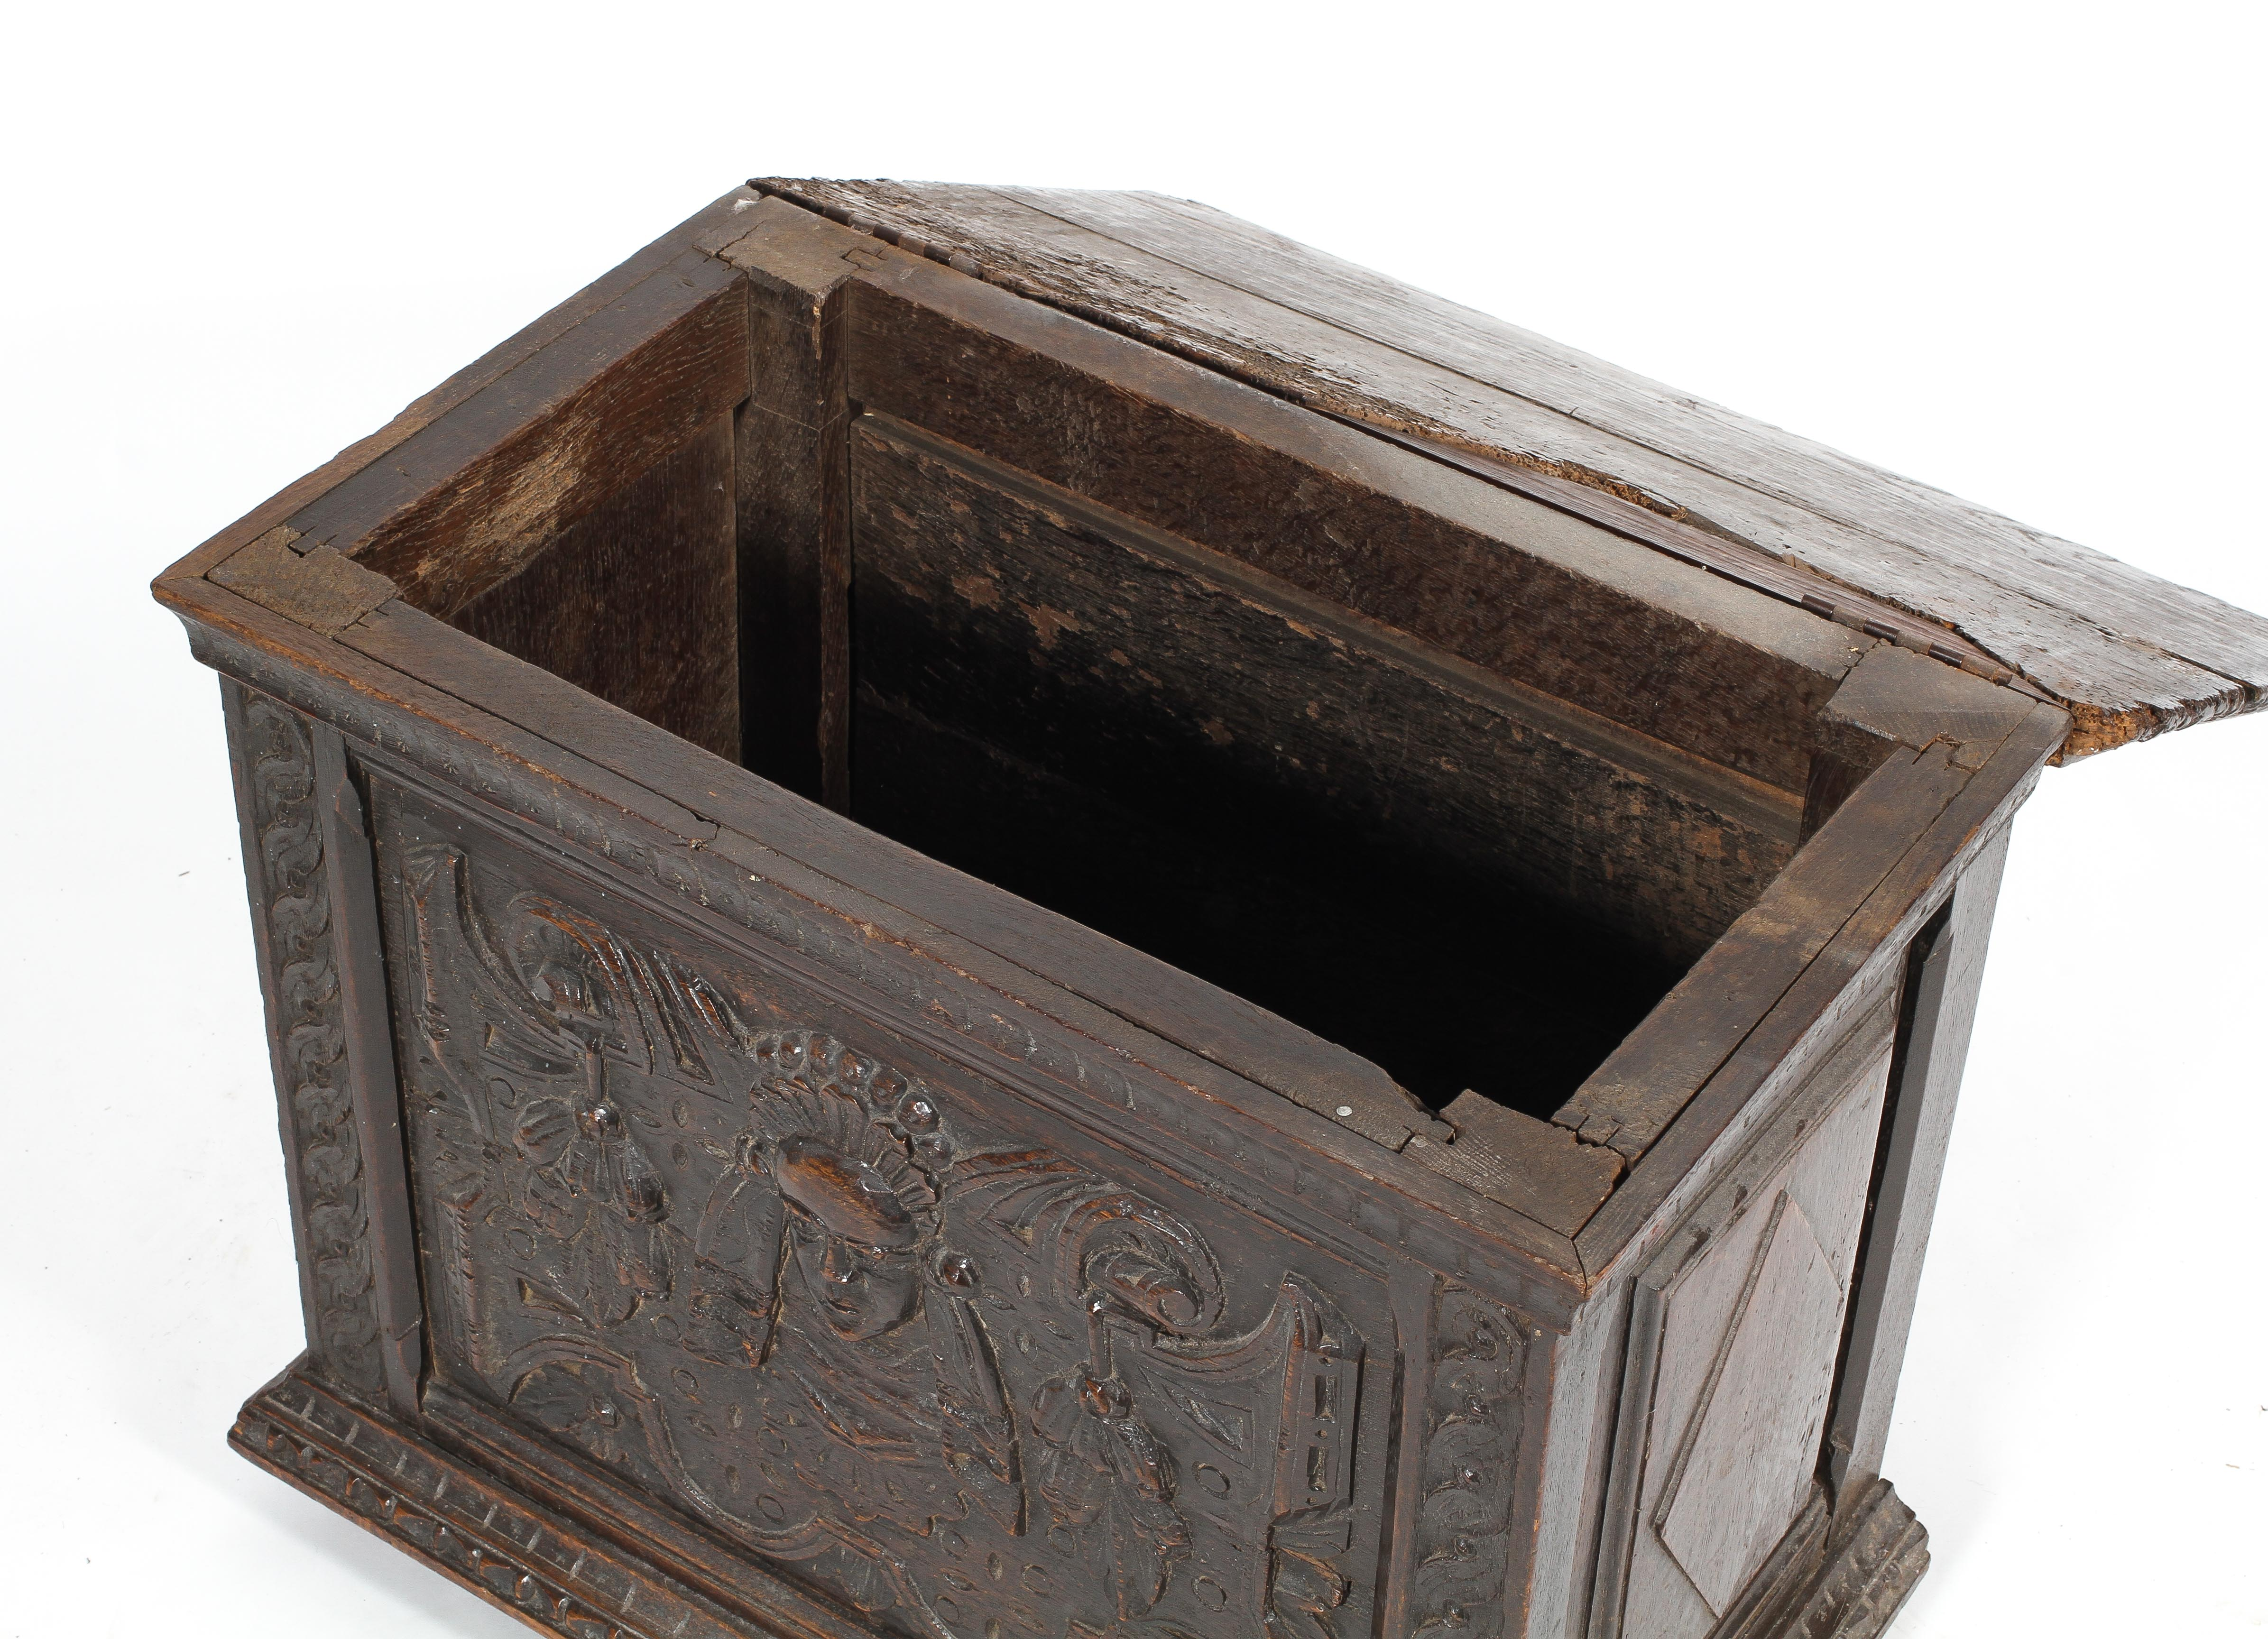 A small oak coffer or box, 17th century or later, with carved foliate rims, - Image 2 of 2